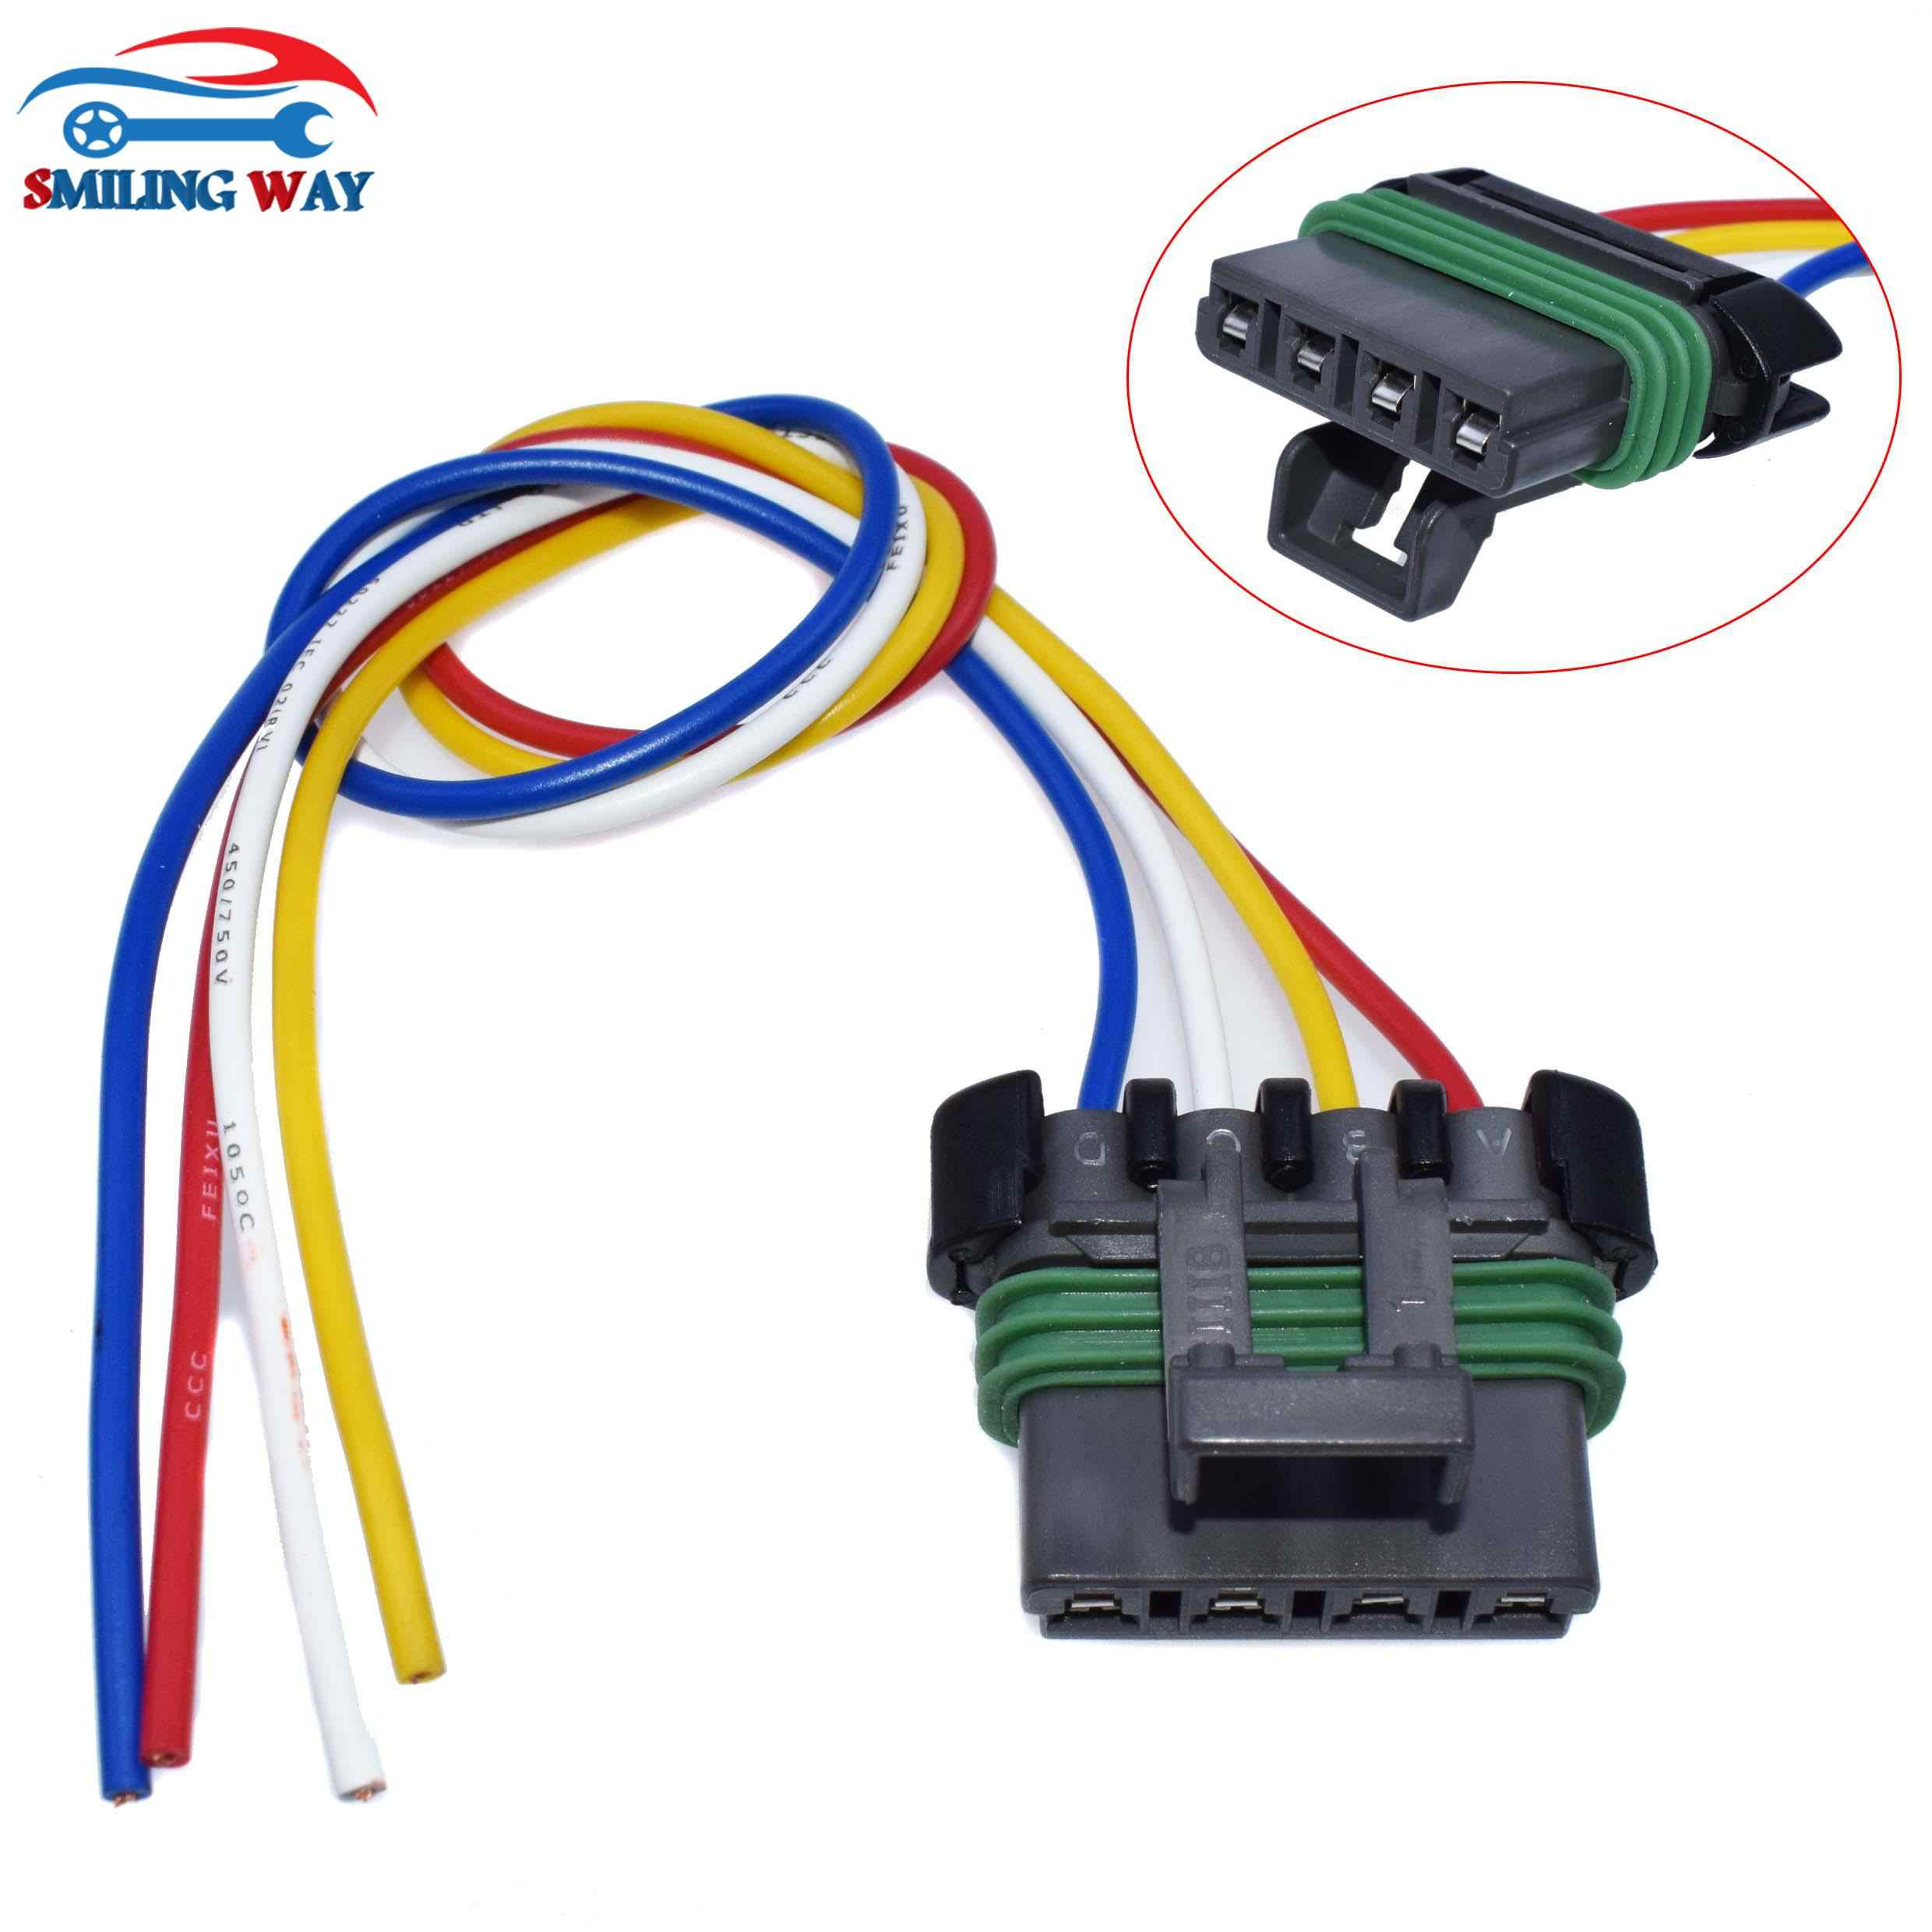 HVAC Blower Motor Resistor Wiring Harness Connector Pigtail Cable Plug For  Chevrolet GMC Buick Pontiac Saturn Cadillac Isuzu| | - AliExpressAliExpress